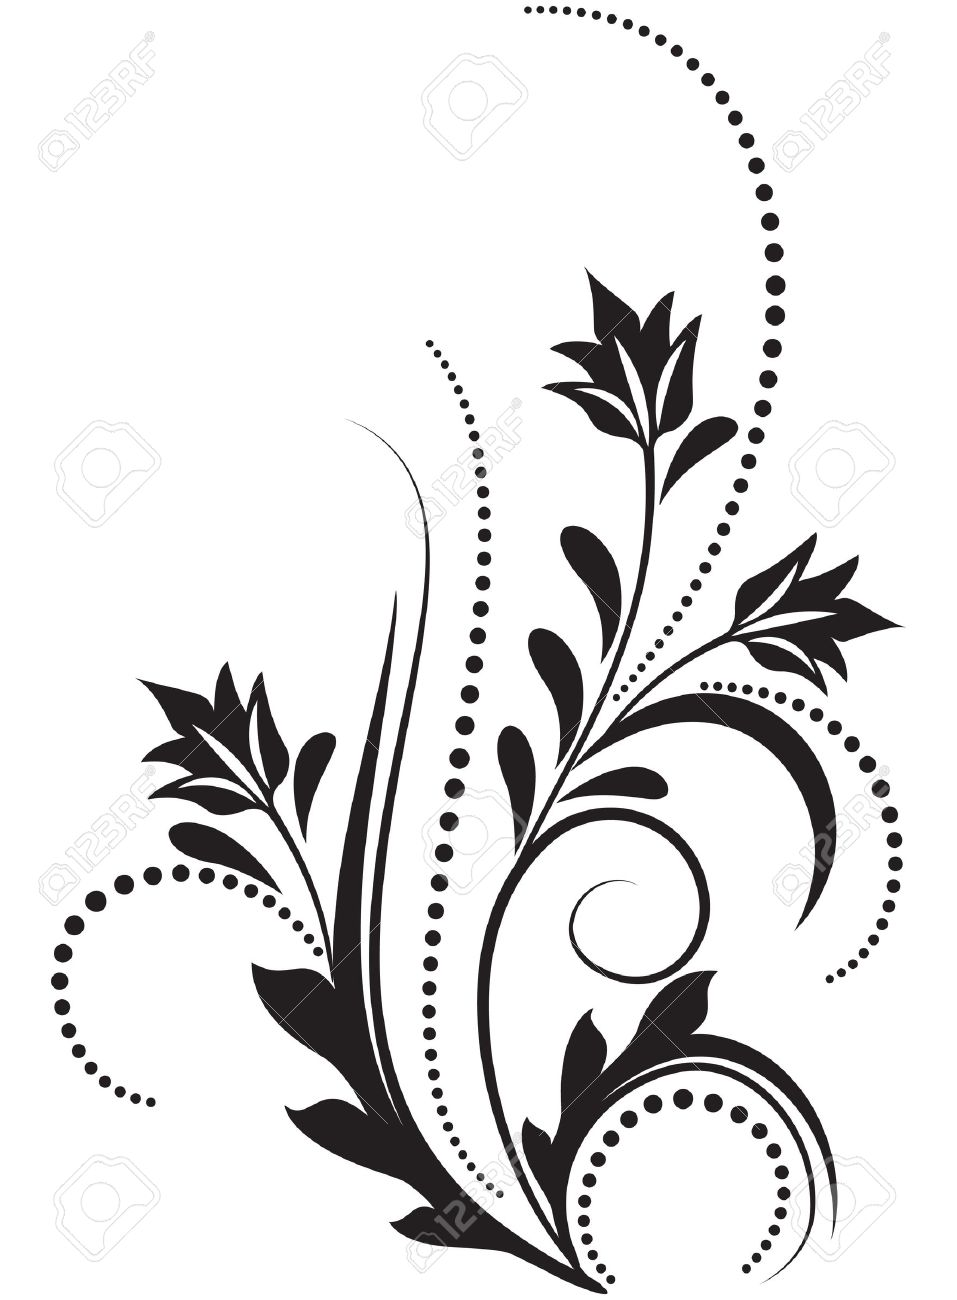 Decorative ornament for various design artwork stock vector 10228512